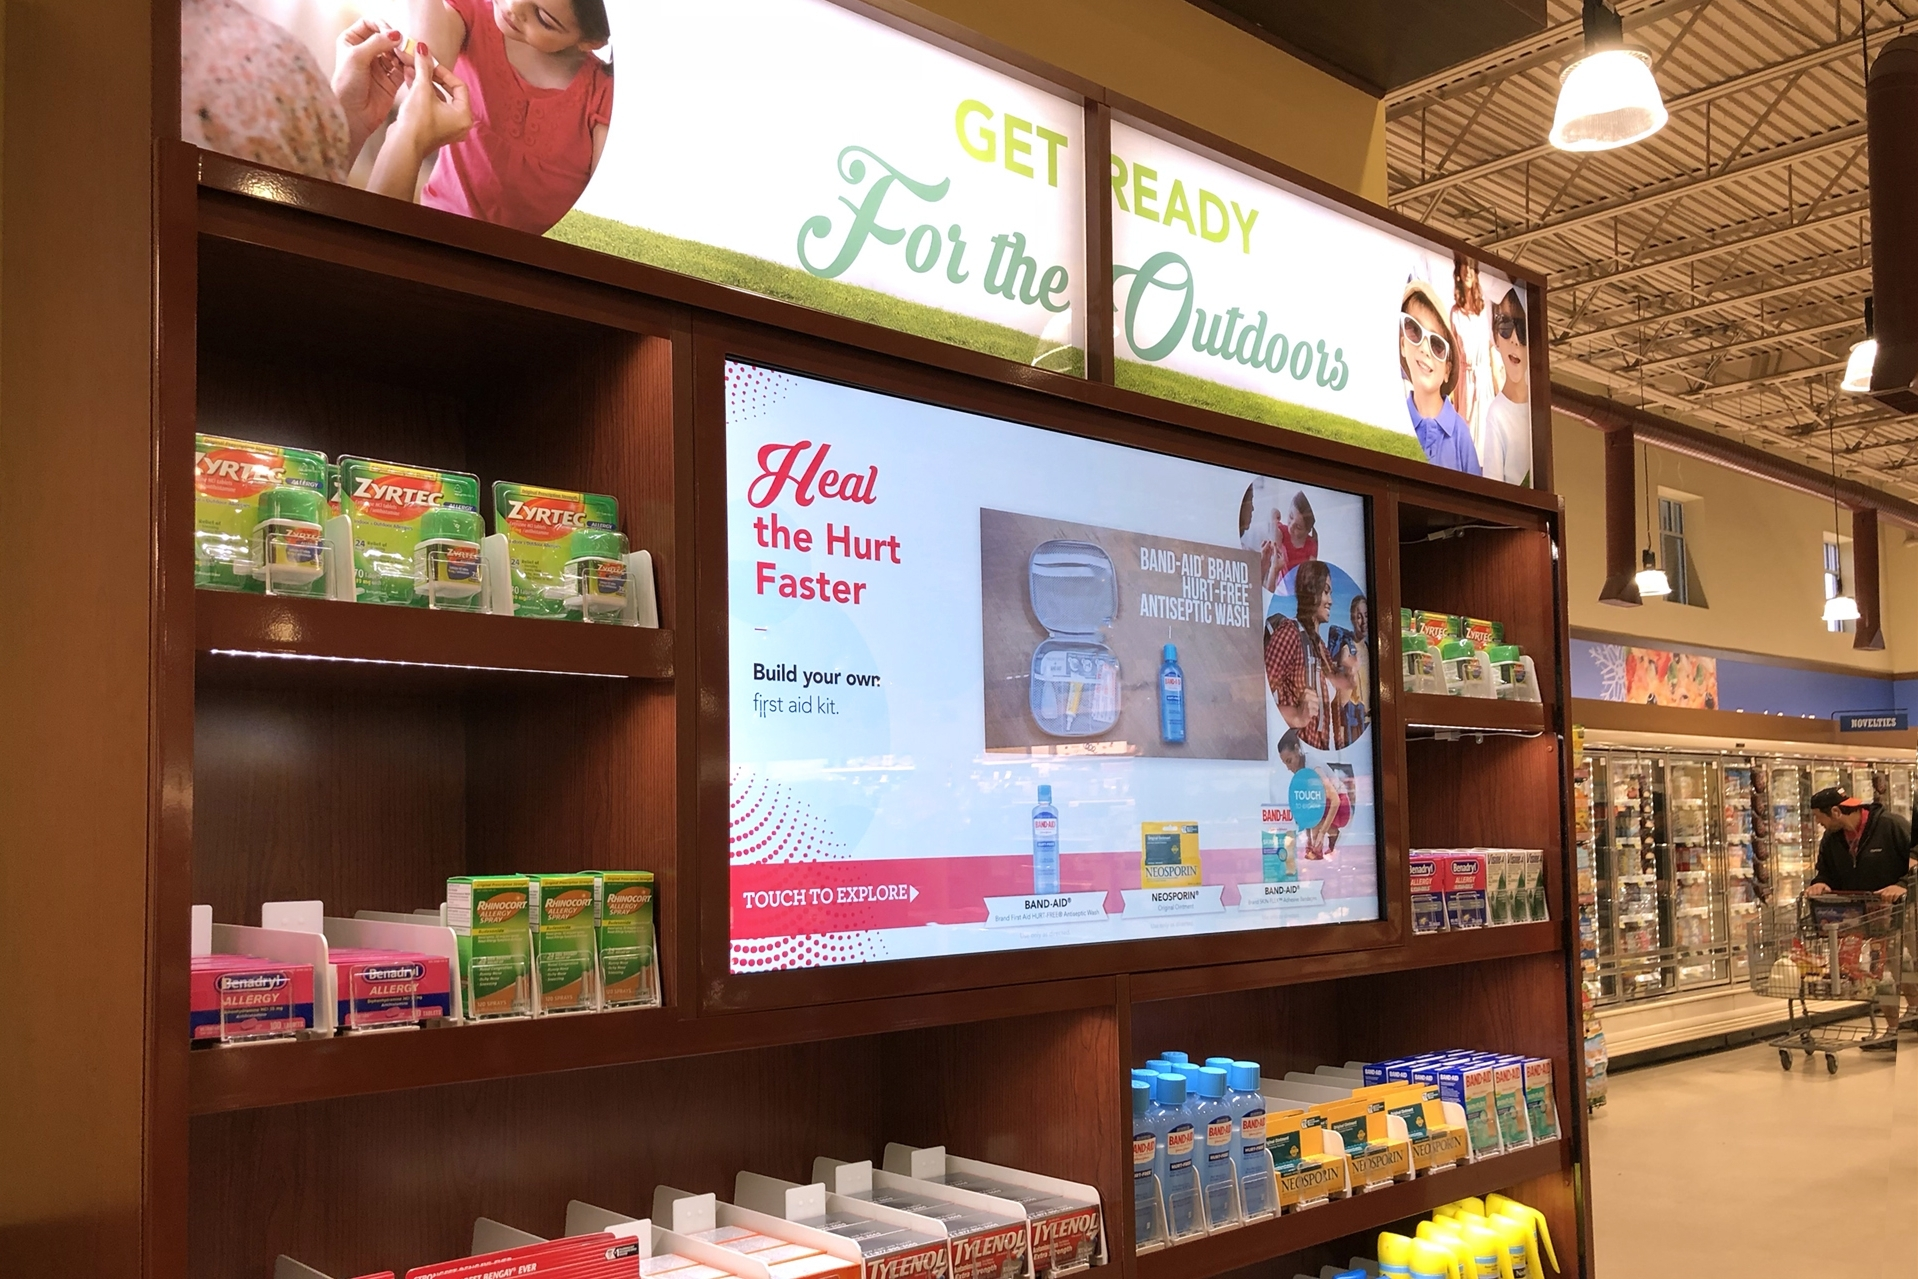 Johnson & Johnson - Interactive product shelf in Shoprite highlights 30 products across over 15 brands with videos, ratings and reviews and more.